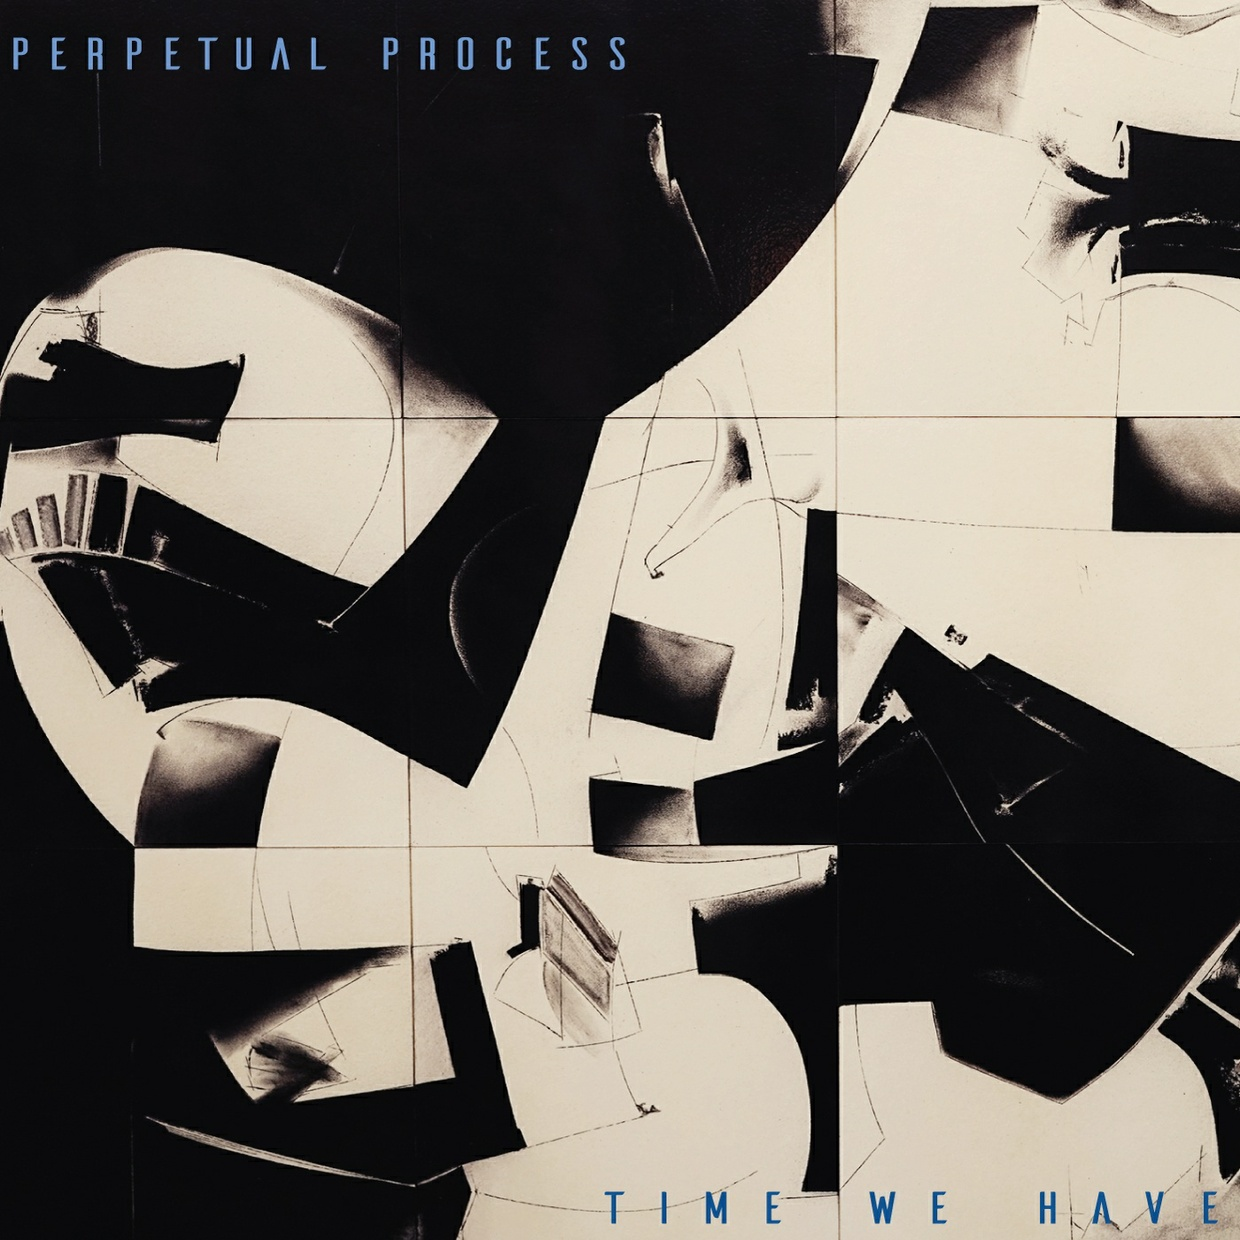 Perpetual Process - Time We Have (MP3)